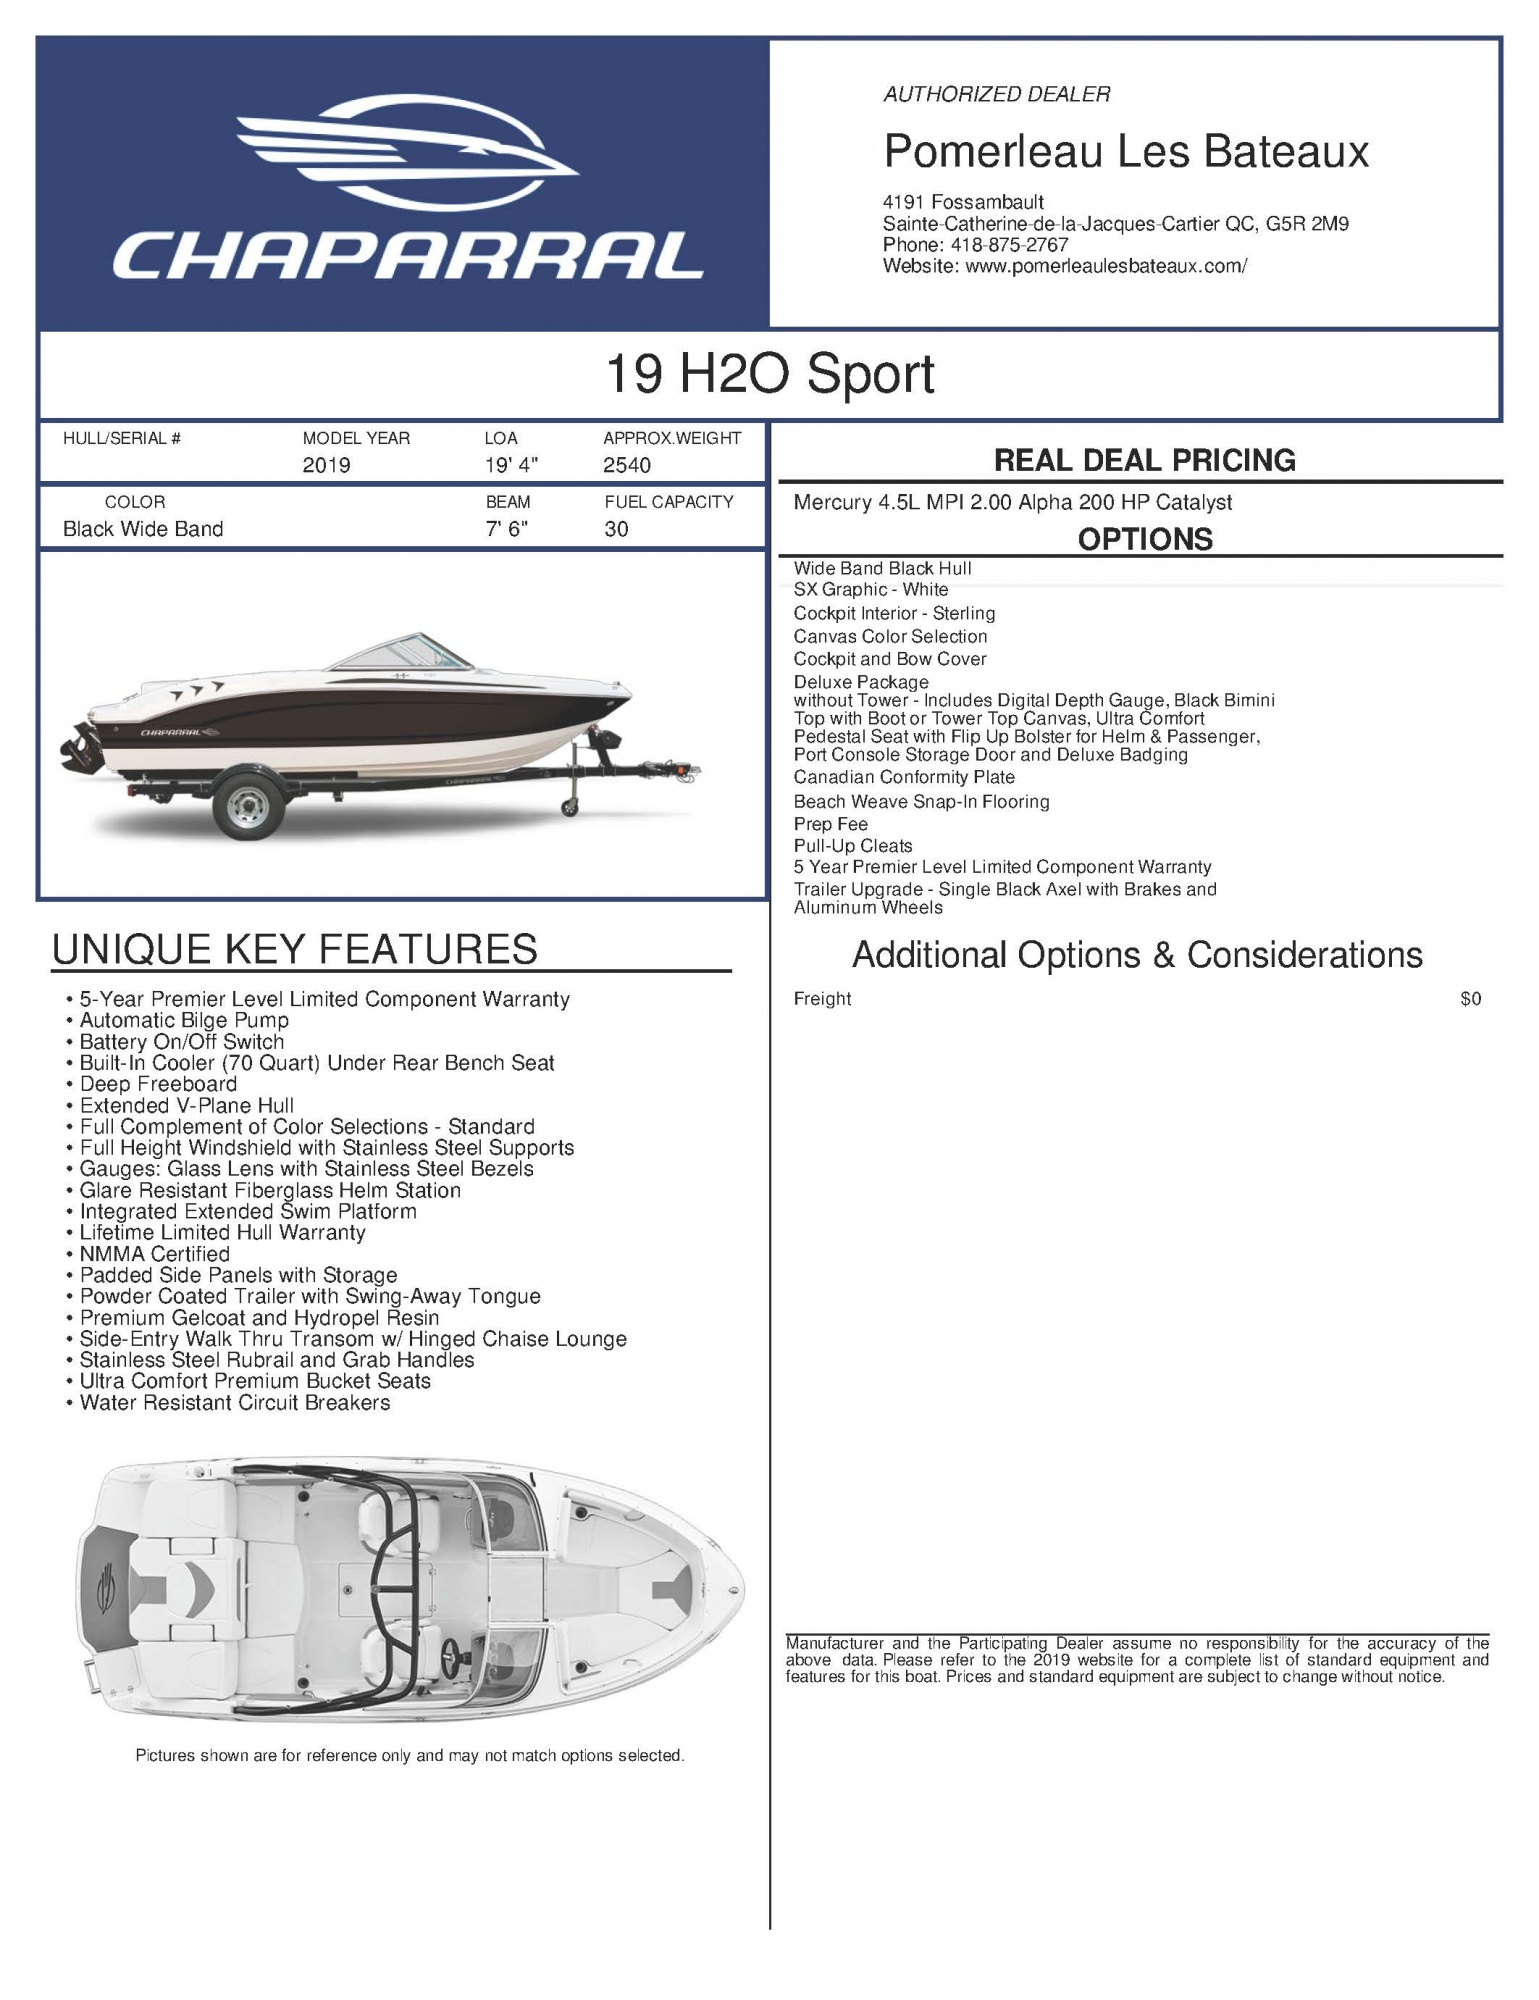 Chaparral H2O 19 - Chaparral-Boats-2019-19-Sport-Window-Sticker-272222